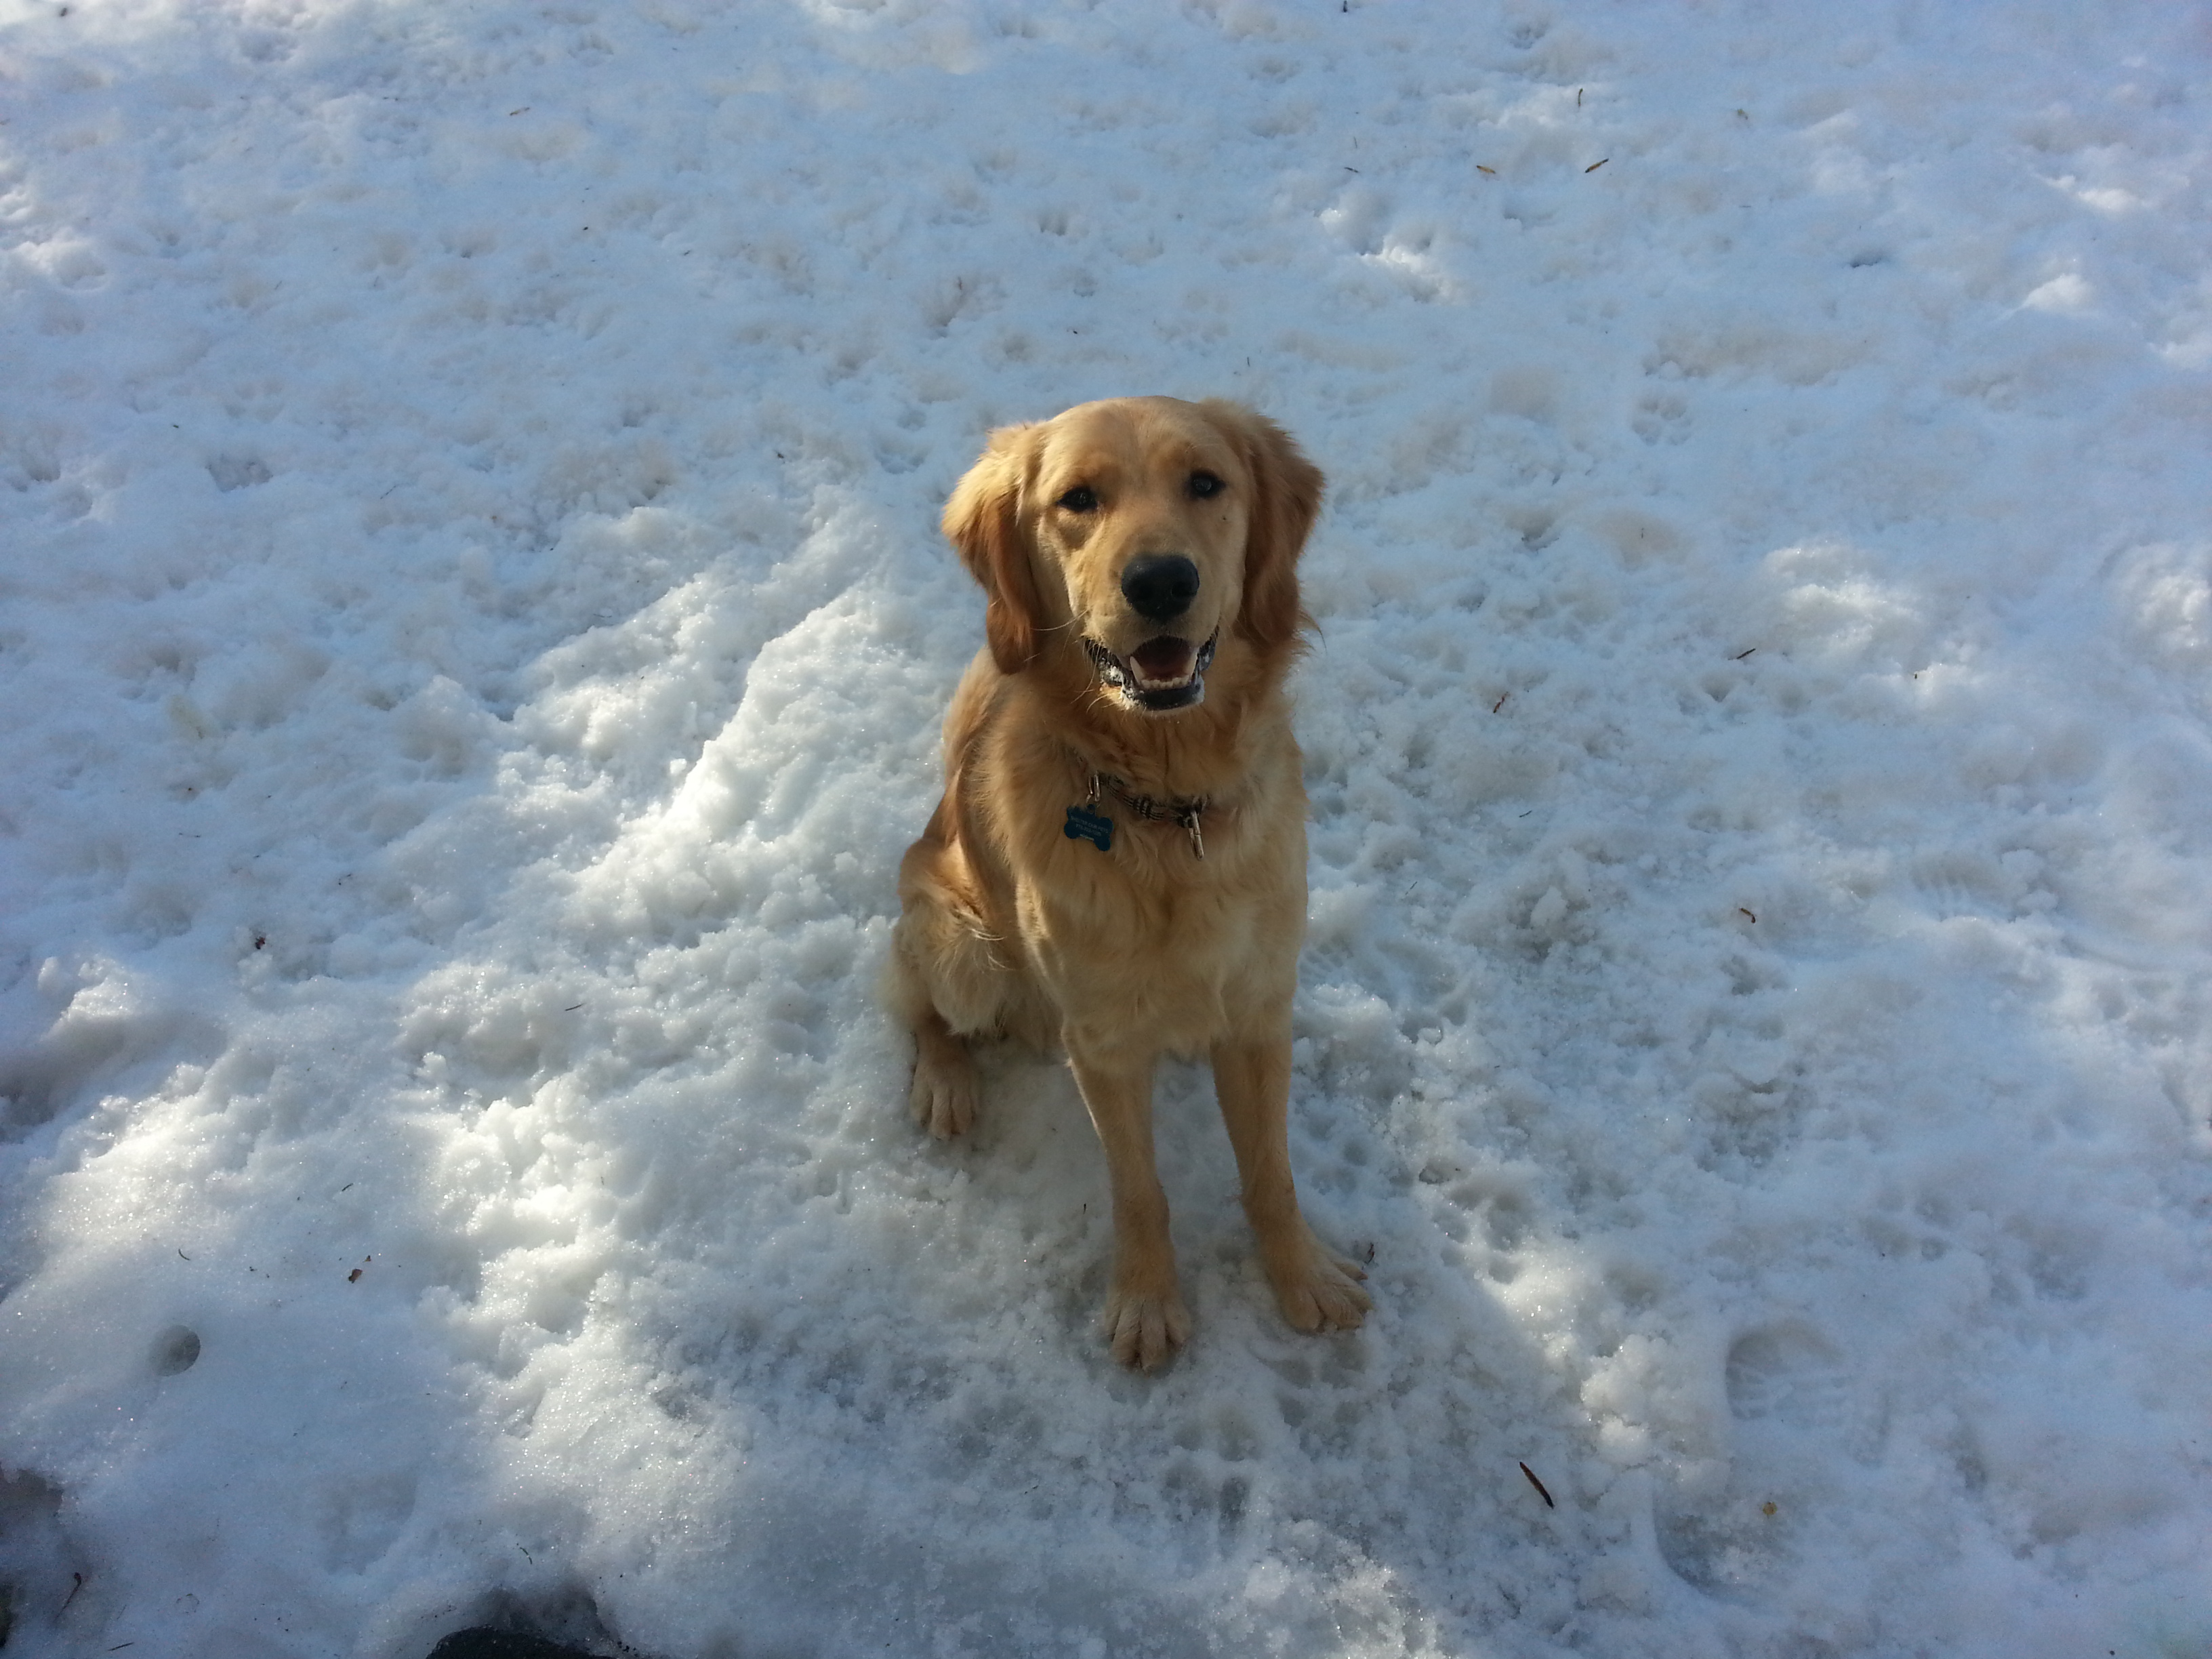 The snow didn't stop this guy from playing fetch with his foster family!